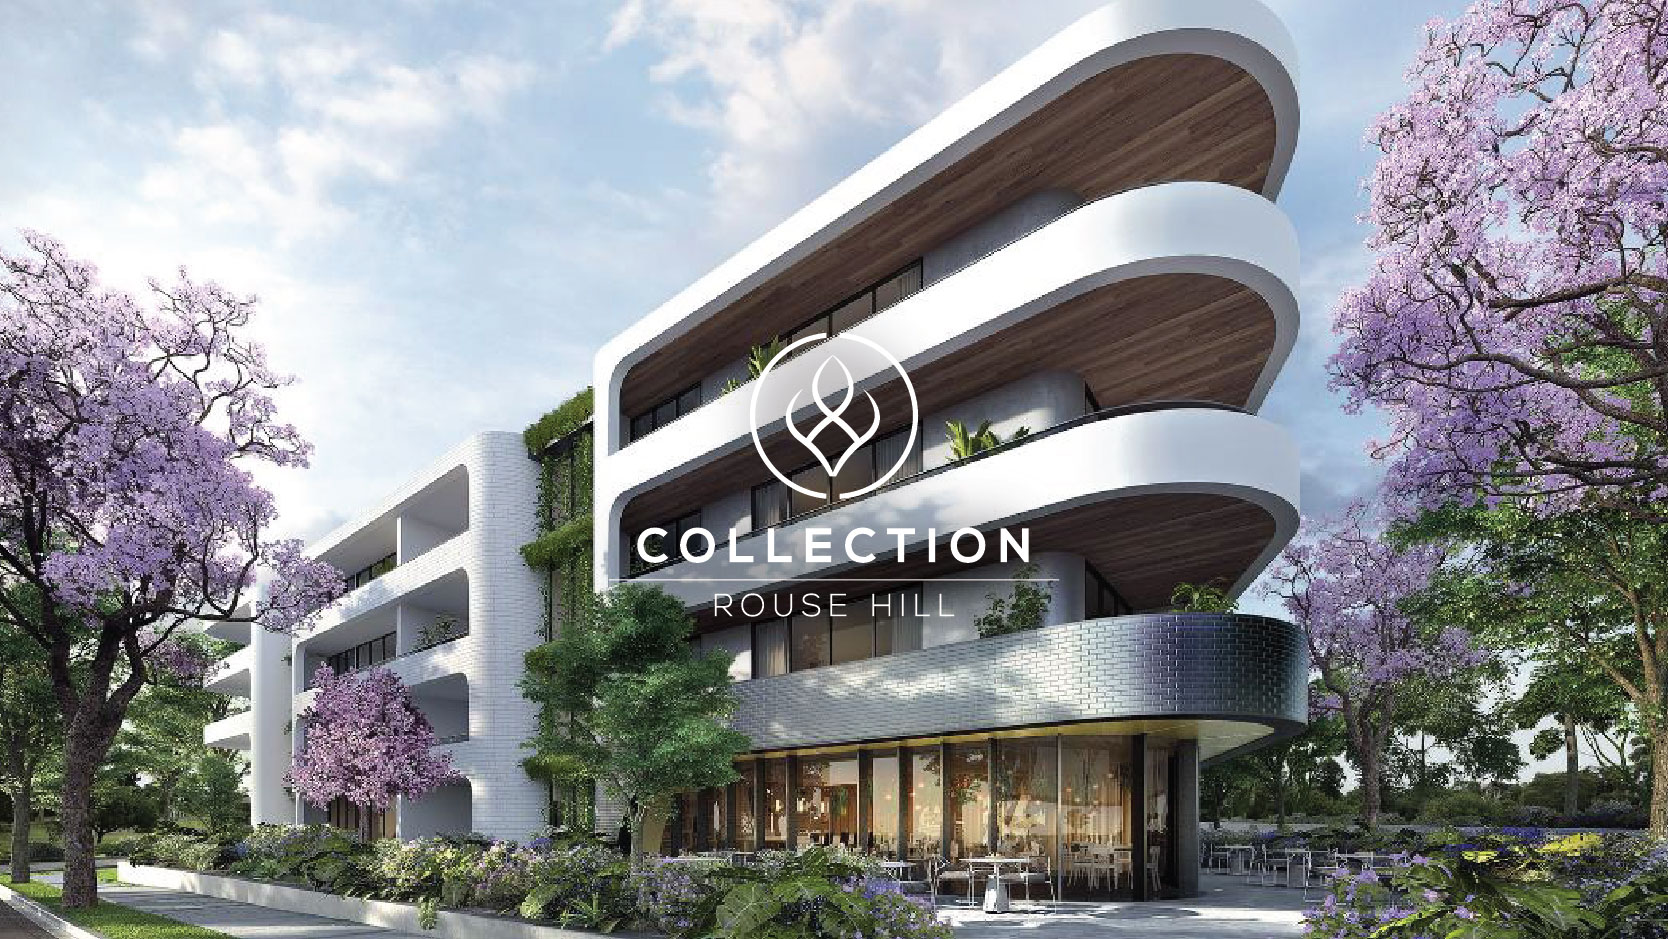 Collection Rouse Hill